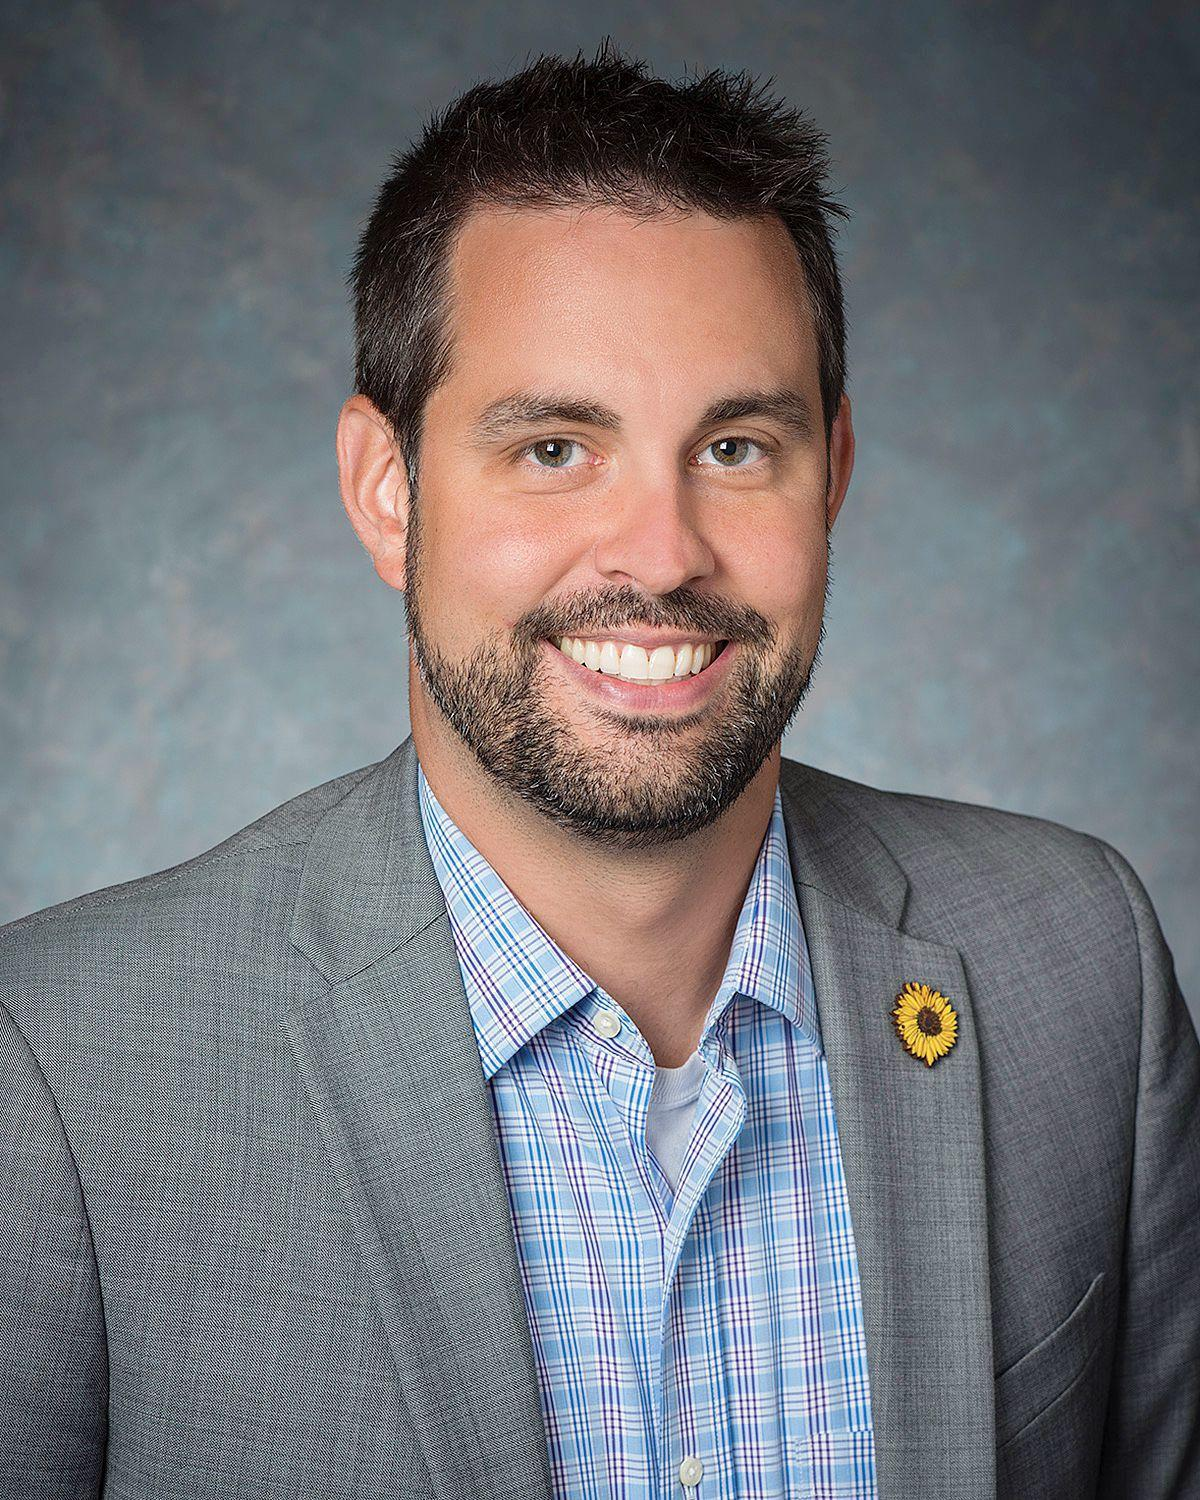 Samsel, Kansas State Rep. for 5th District, charged with battery after classroom incident